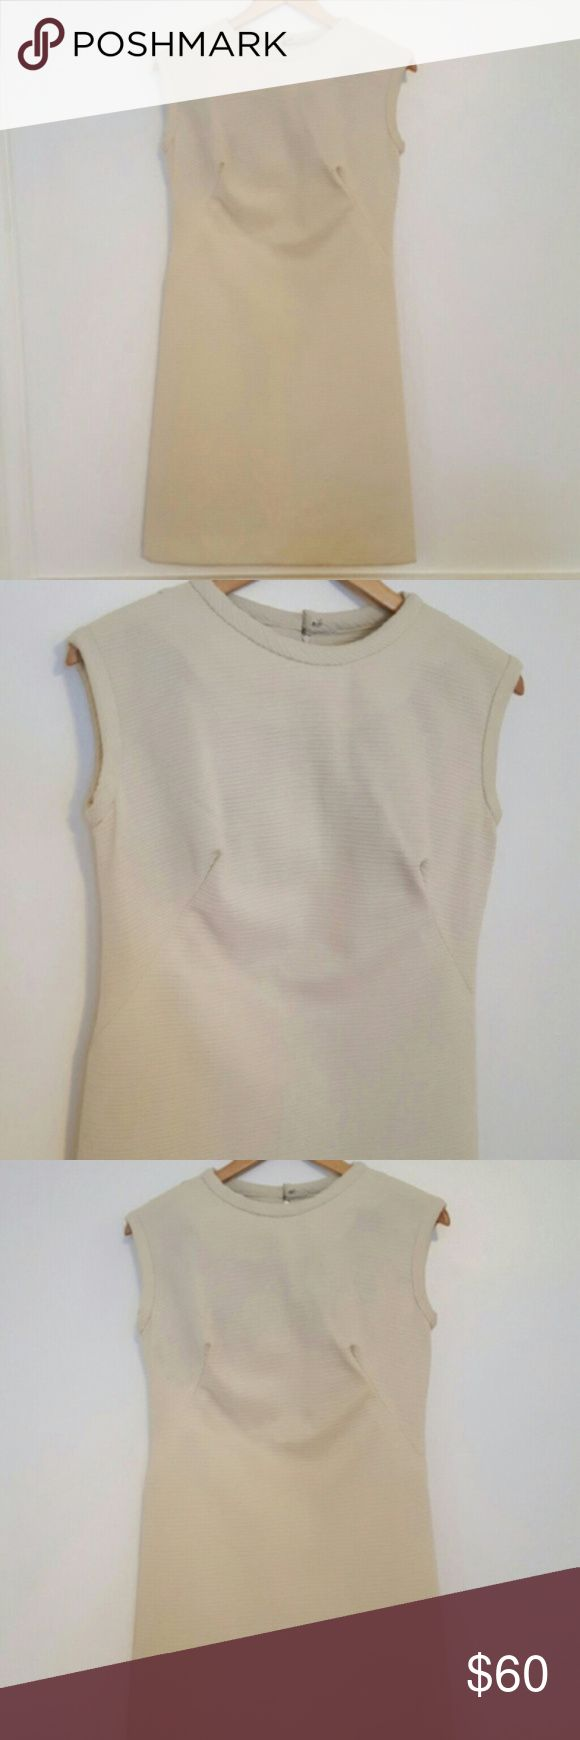 """1960s Mod Shift Cream Textured Sleeveless Dress Great vintage condition cream 60s Parkshire Original shift dress for summer and fall. Perfect with a scarf and heels. Bust is 19.5"""" flat across, waist is 17"""" flat across, and hips are 19.5"""" flat across. 38.5"""" length and the fabric has some stretch. Similar to a modern size medium (not a guarantee of fit- please see measurements). imperfection noted in the last pic. Vintage Dresses Midi"""